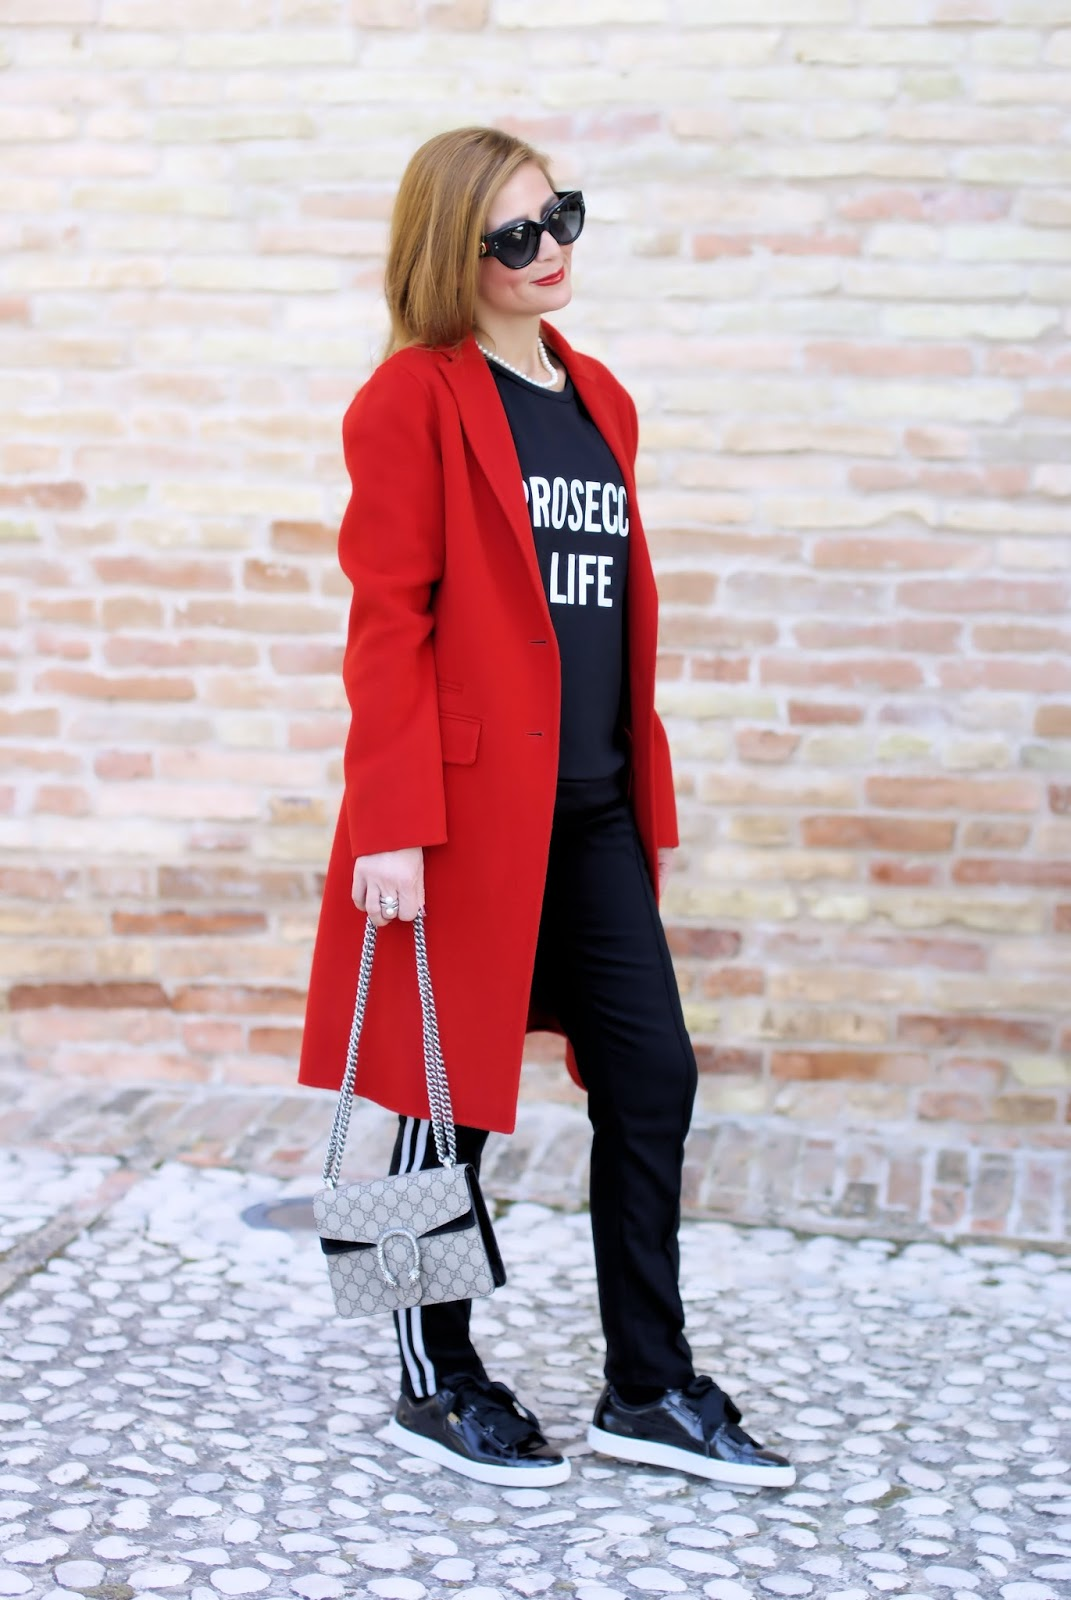 How to wear a read coat with 1.2.3 Paris jack coat and prosecco life sweatshirt on Fashion and Cookies fashion blog